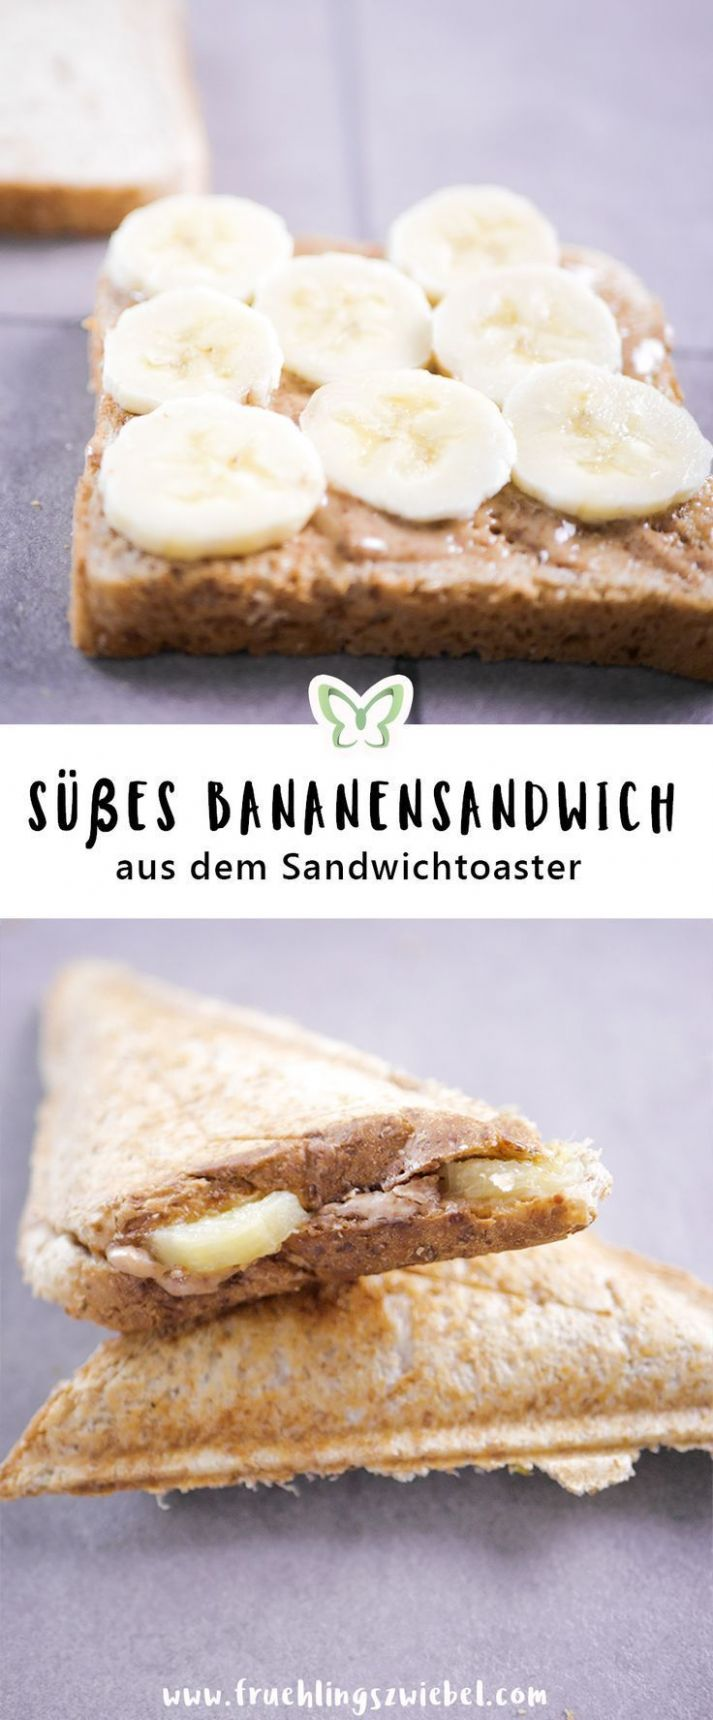 Sandwich Maker Recipes - 10 Healthy Sandwich Toasts Ideas ..